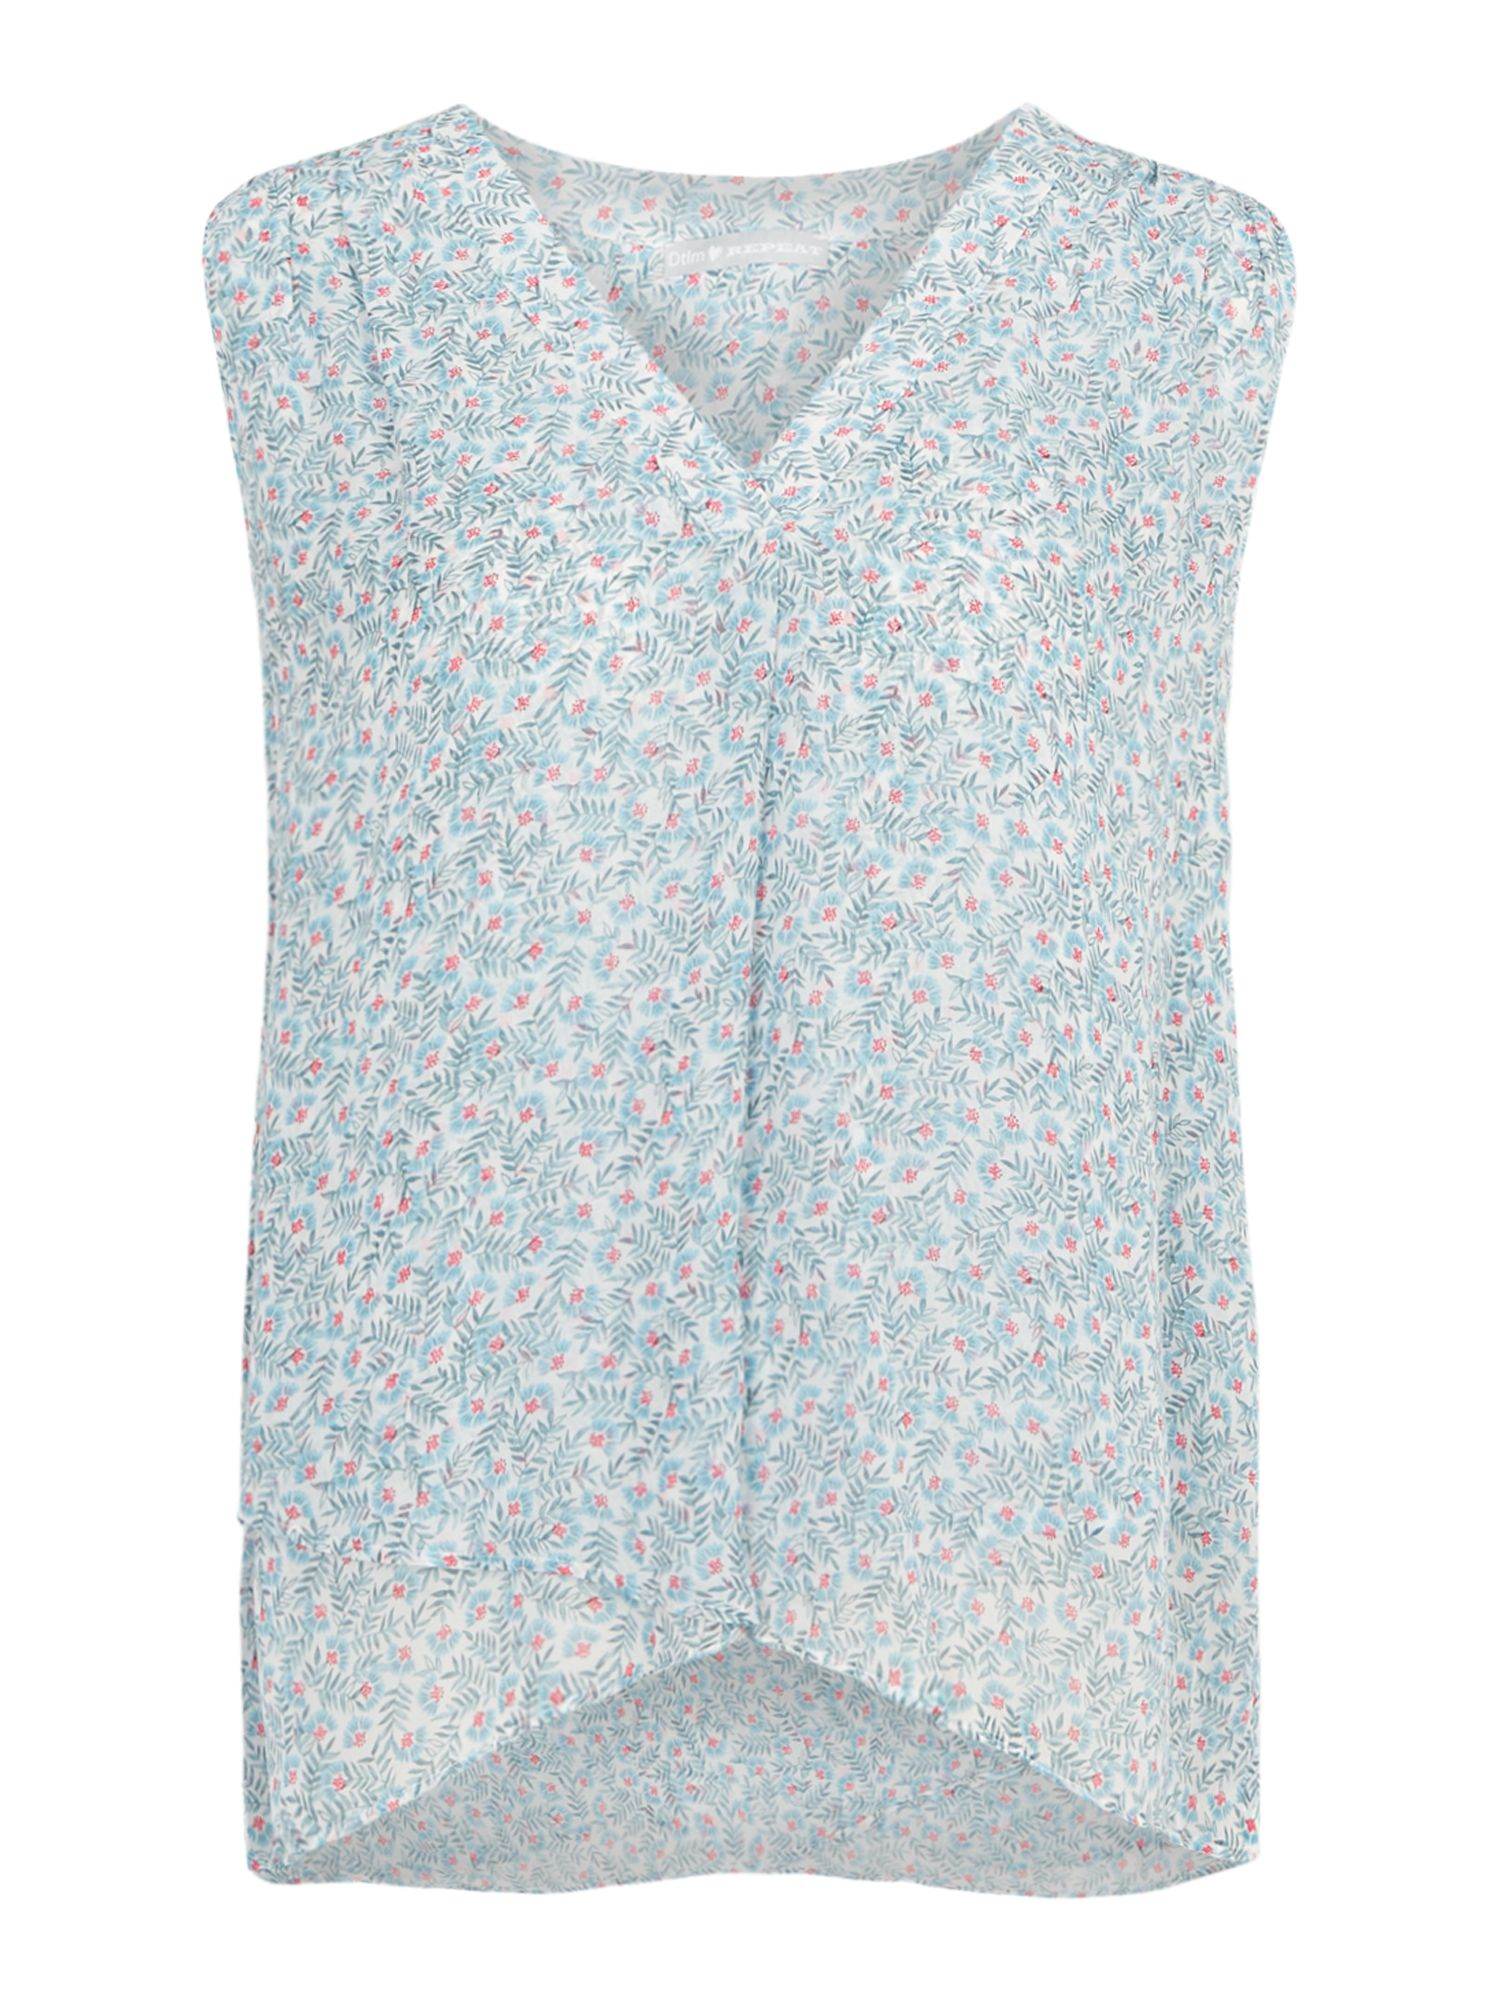 Repeat Cashmere Floral sleeveless top, Multi-Coloured